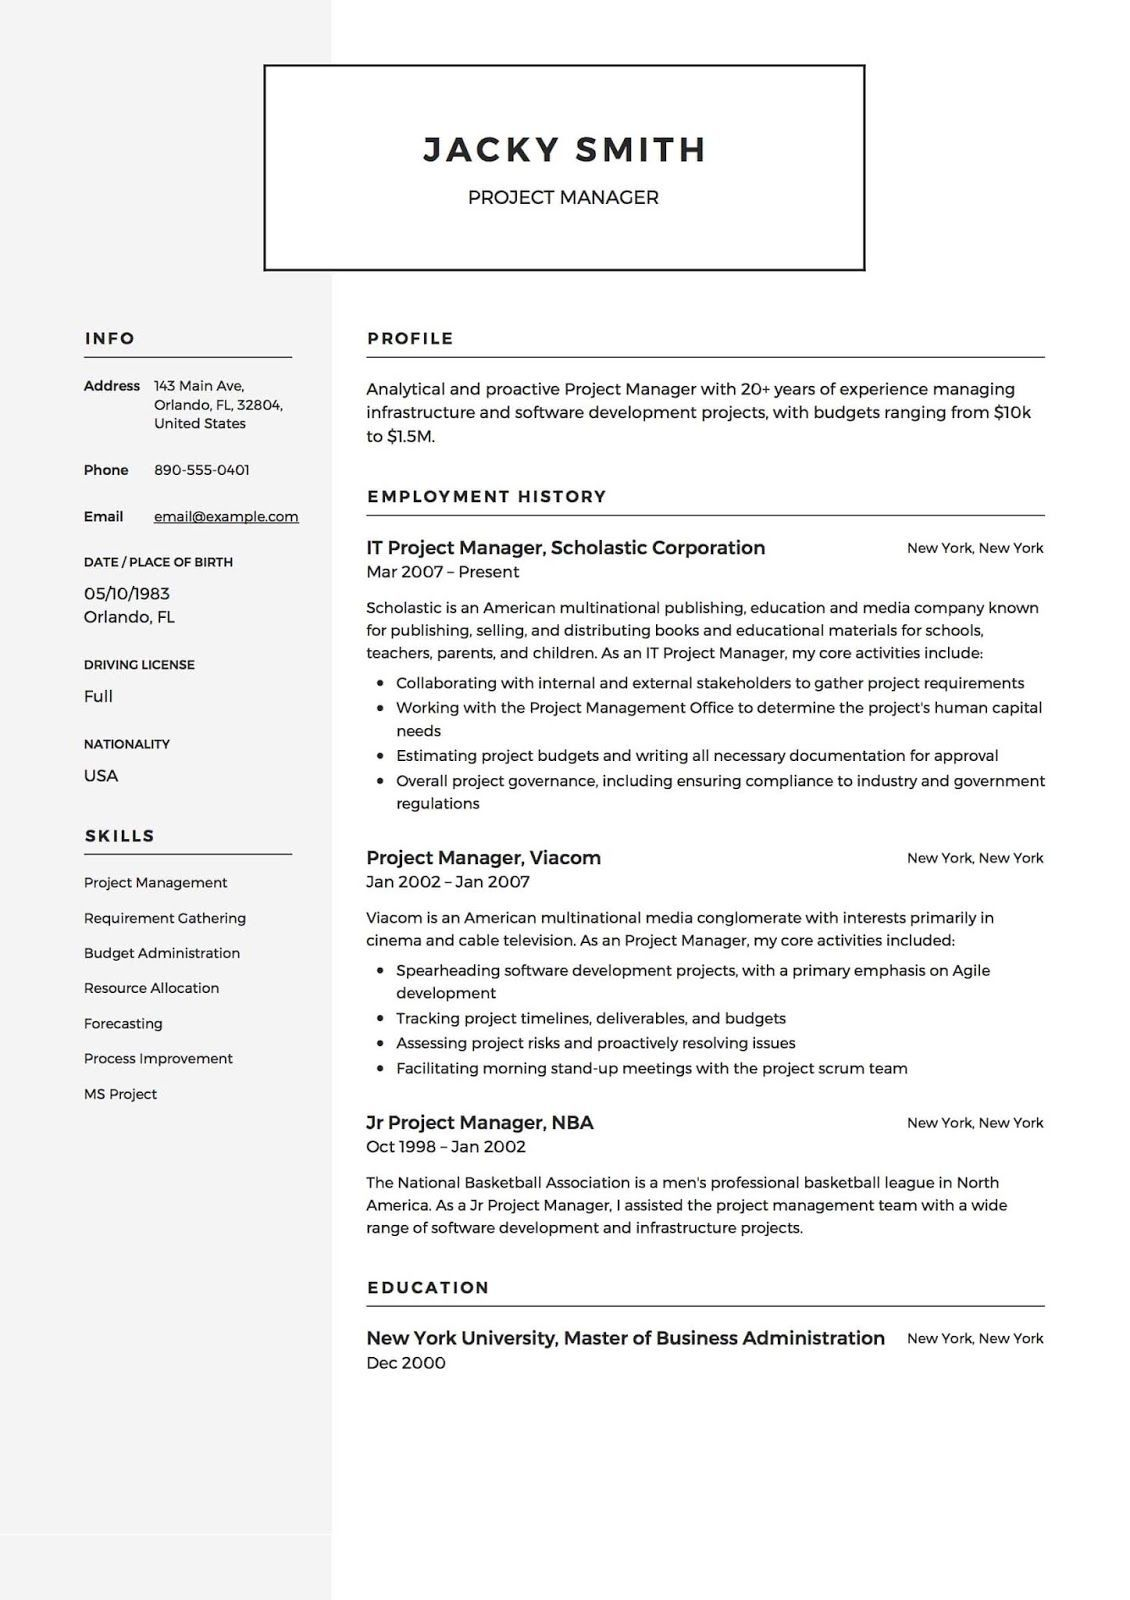 Construction Project Manager Resume How to draft a